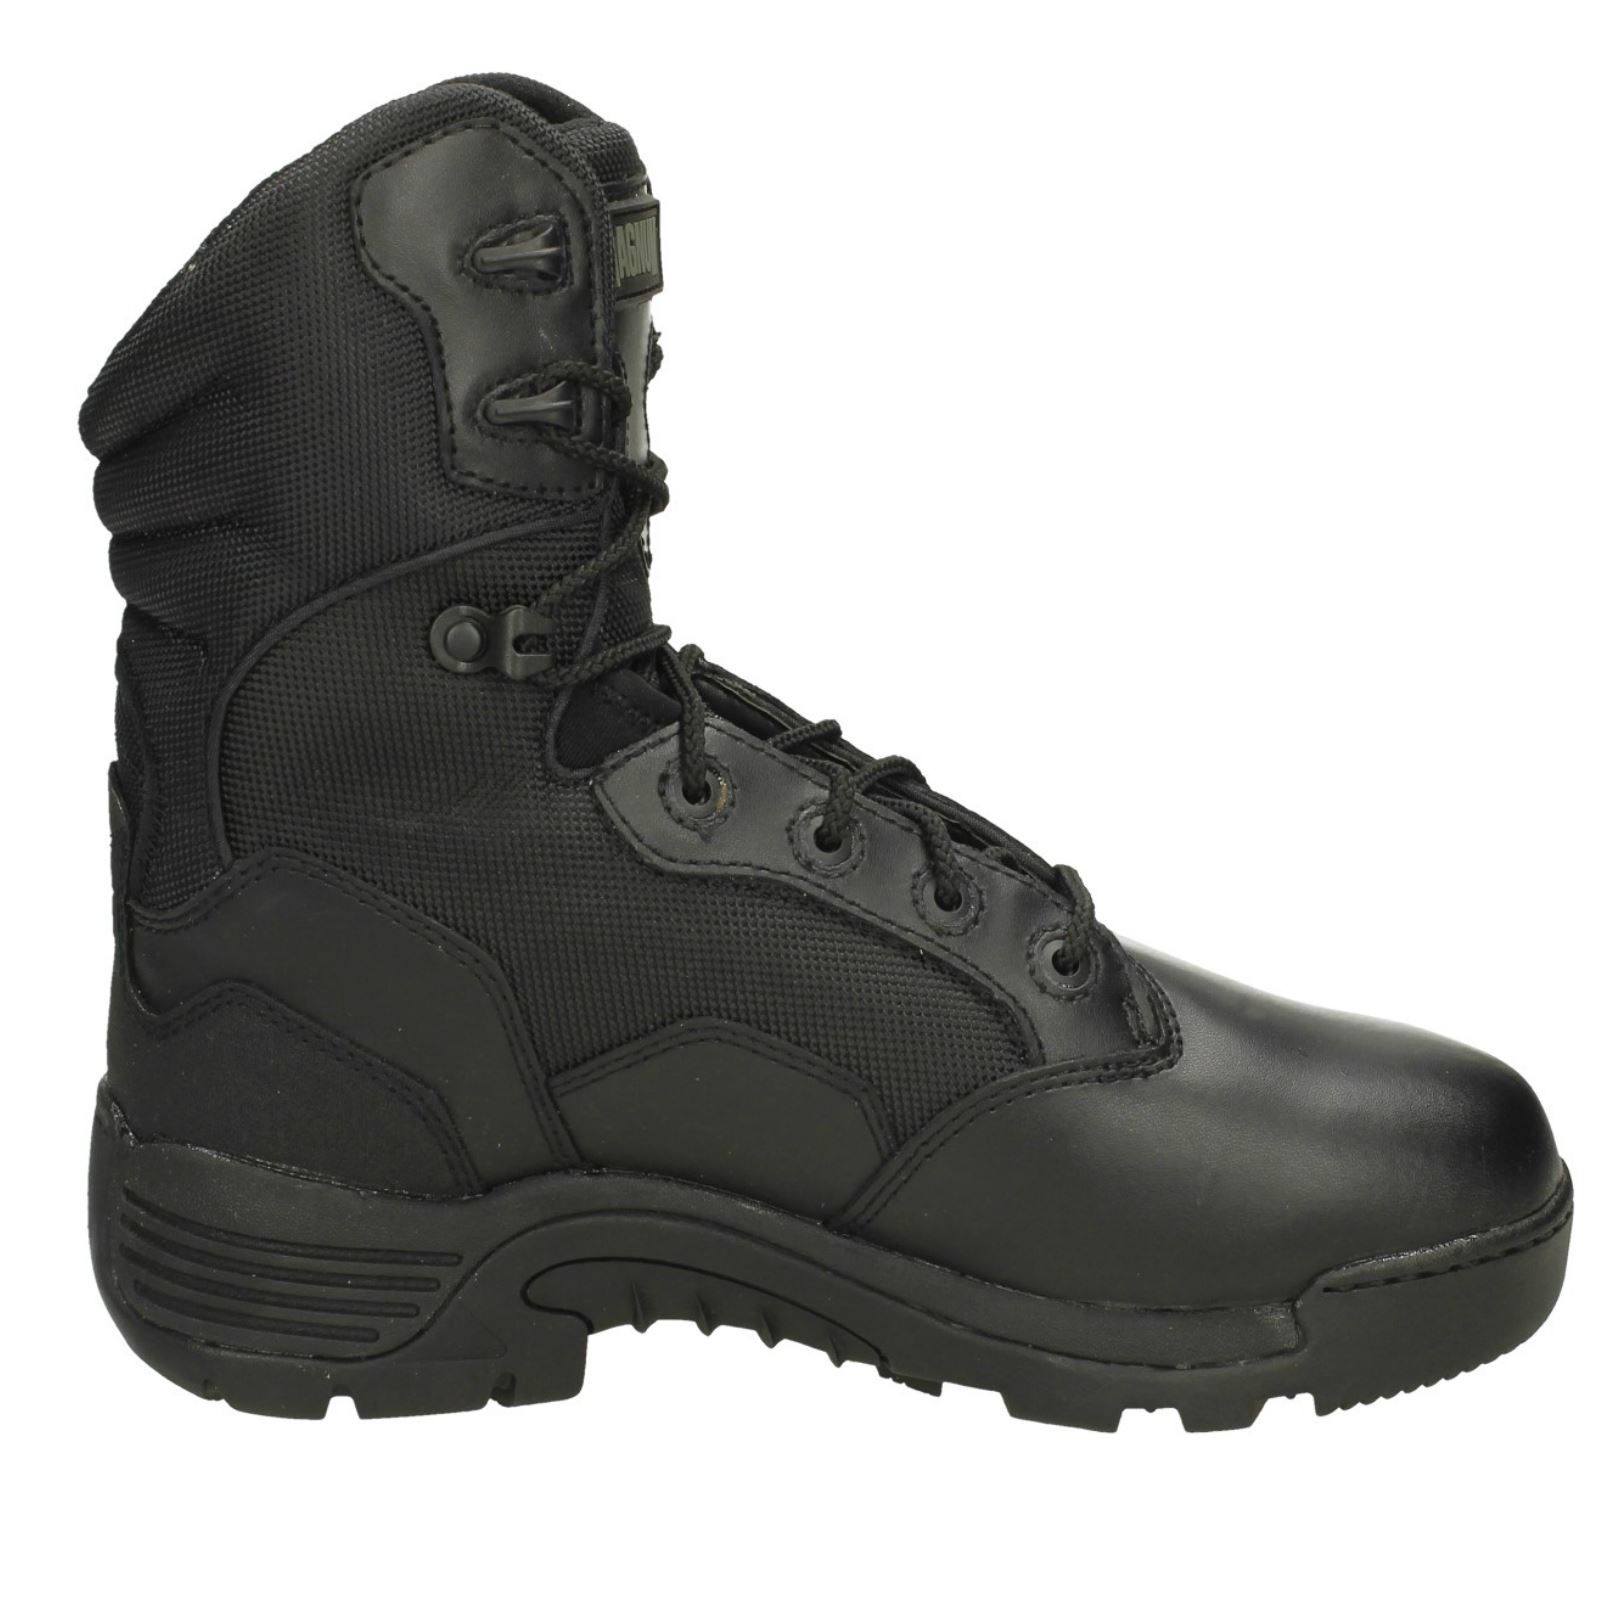 Mens-Magnum-Waterproof-Insulated-Boots-039-Strike-Force-II-039 thumbnail 7